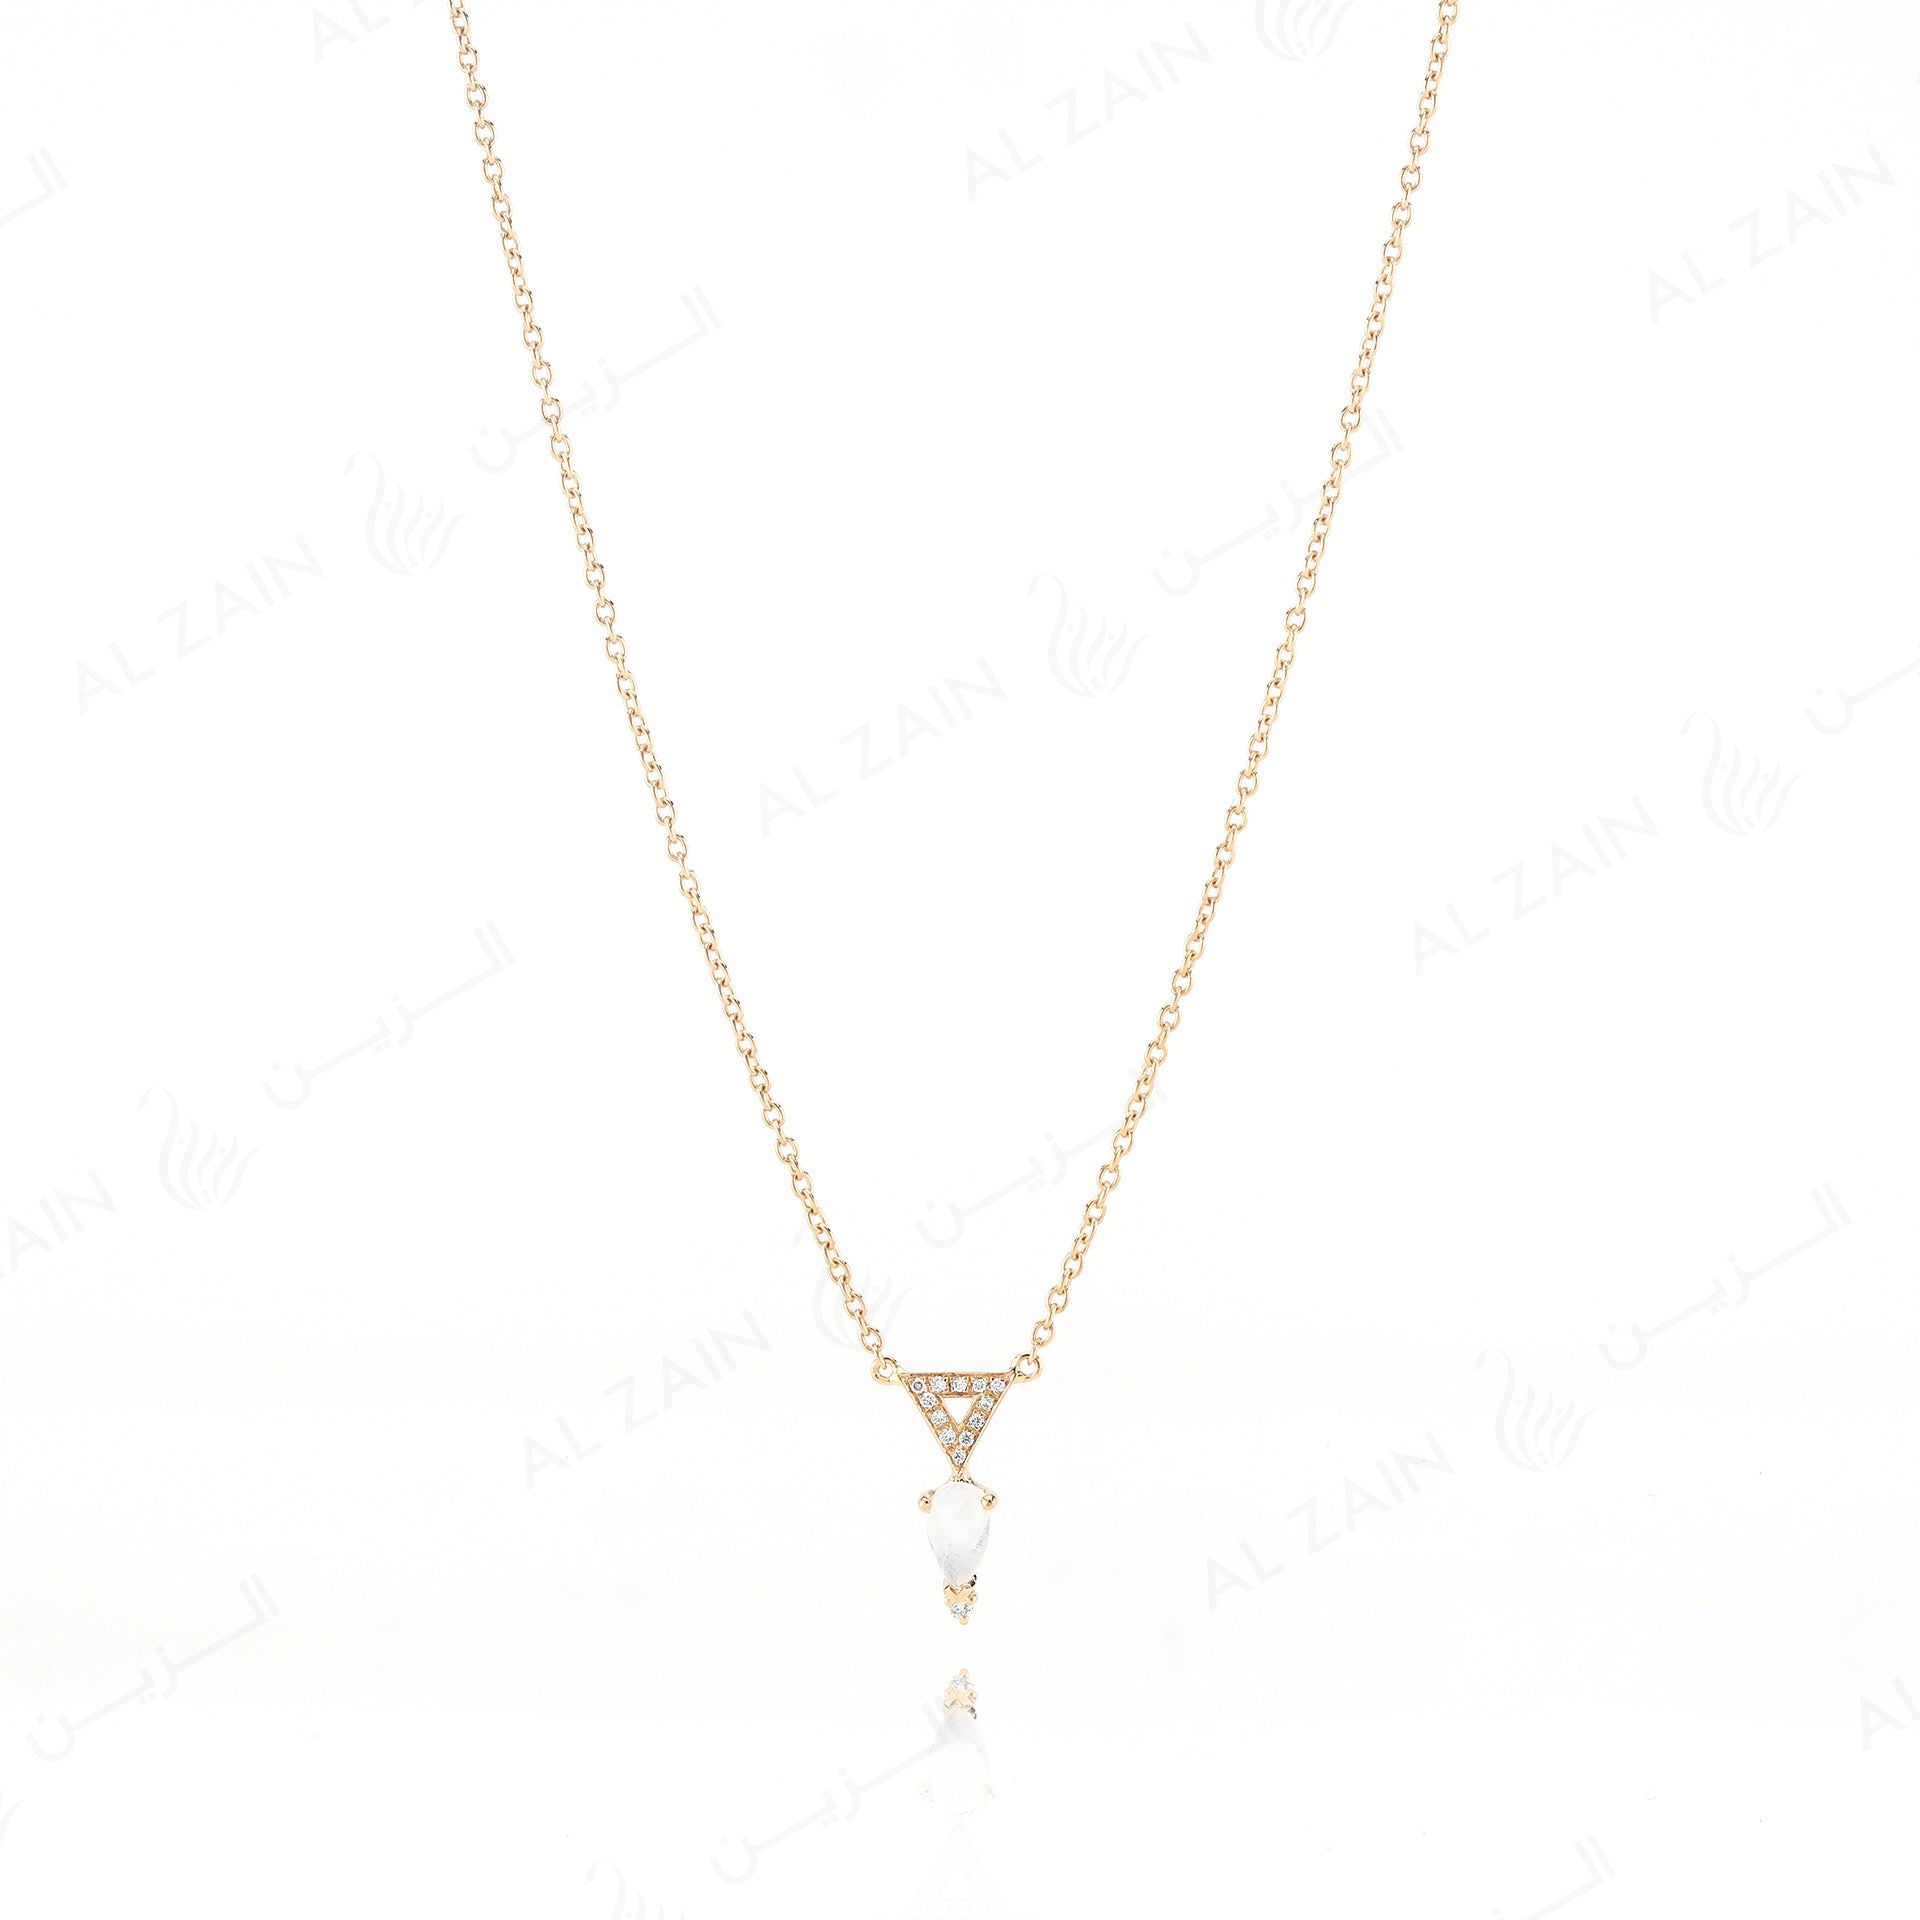 Melati triangle necklace in Yellow Gold with Moon Stone and Diamonds - Al Zain Jewellery